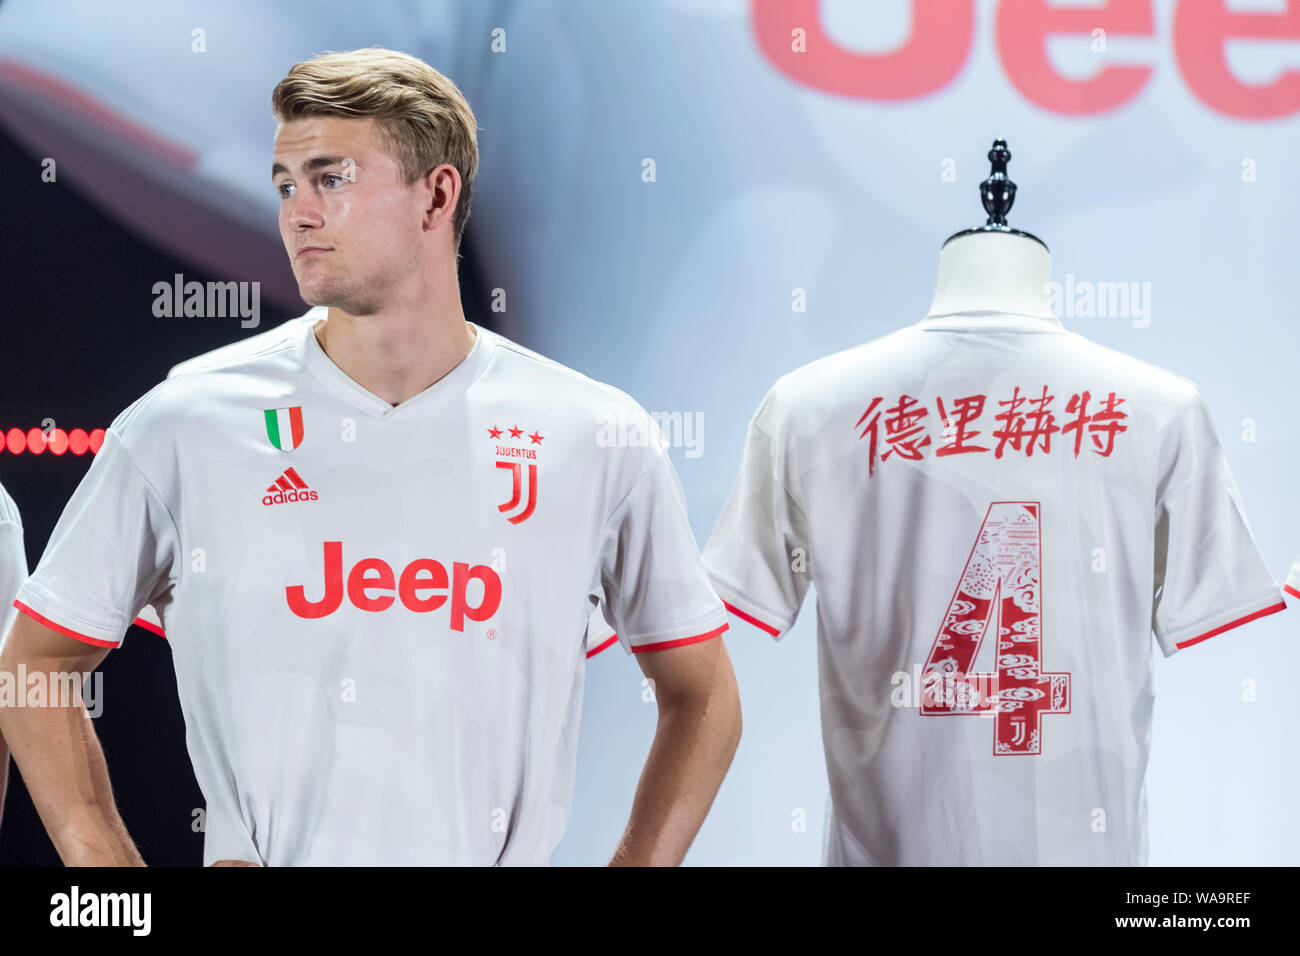 dutch football player matthijs de ligt of juventus f c attends a press conference to launch new 2019 20 away kit during the 2019 international champi stock photo alamy https www alamy com dutch football player matthijs de ligt of juventus fc attends a press conference to launch new 201920 away kit during the 2019 international champi image264518087 html